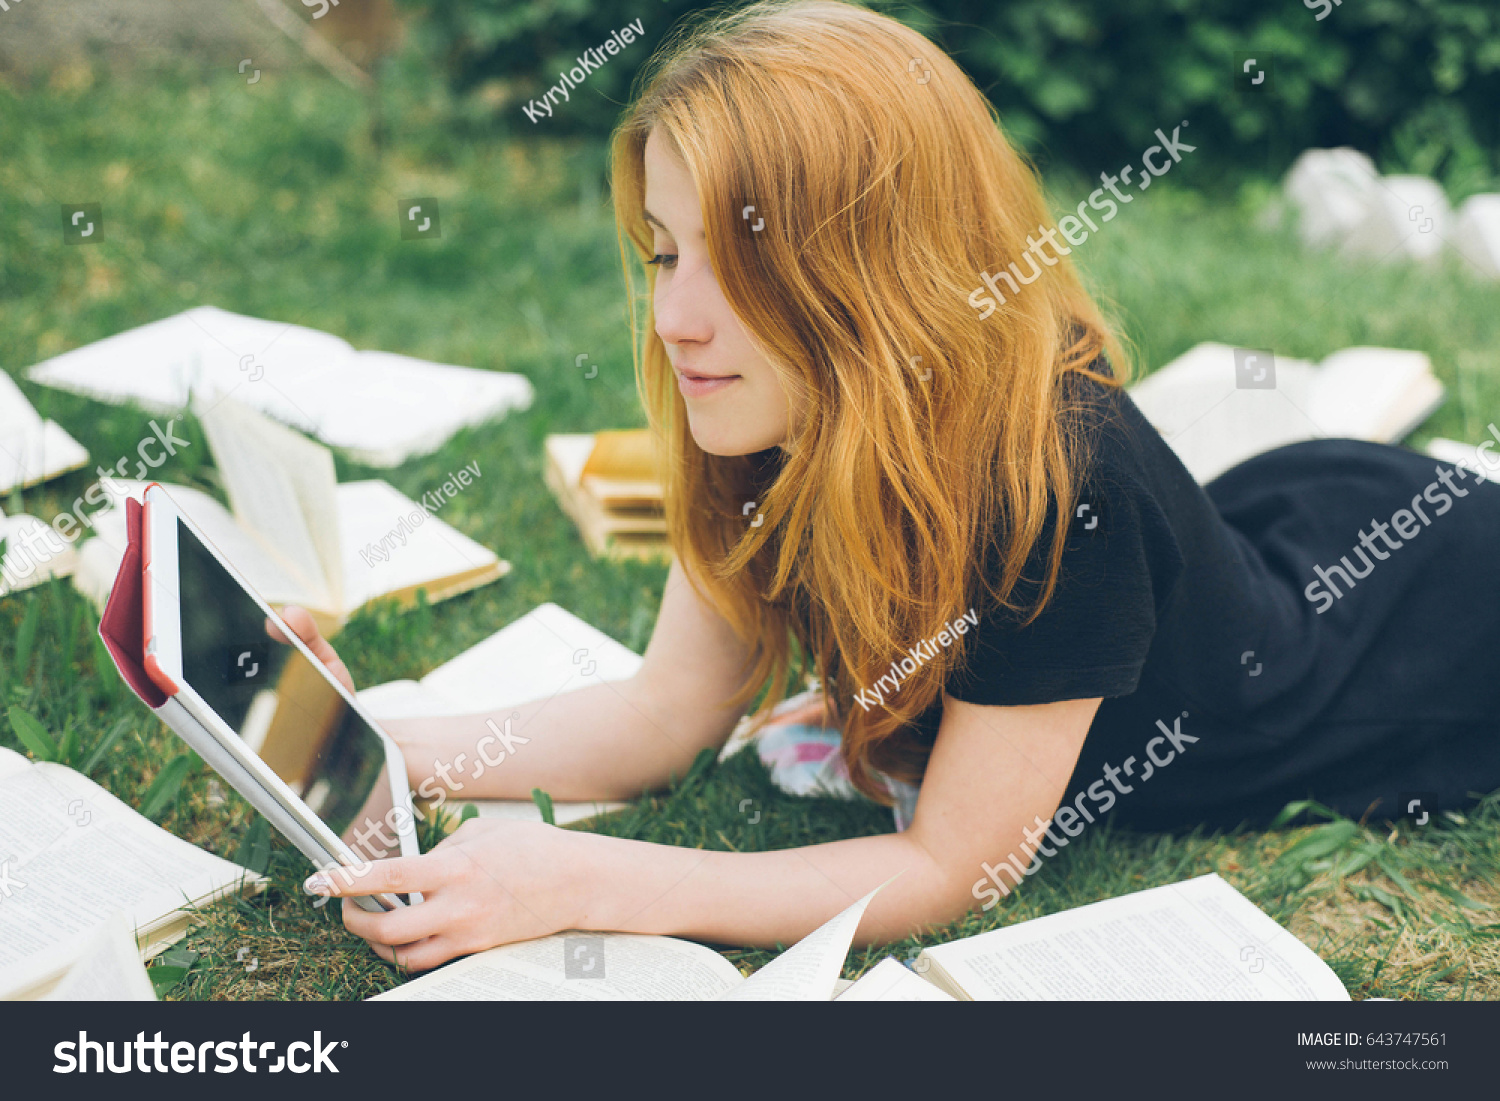 Woman Learning Ebook Reader Book Choice Stock Photo ...